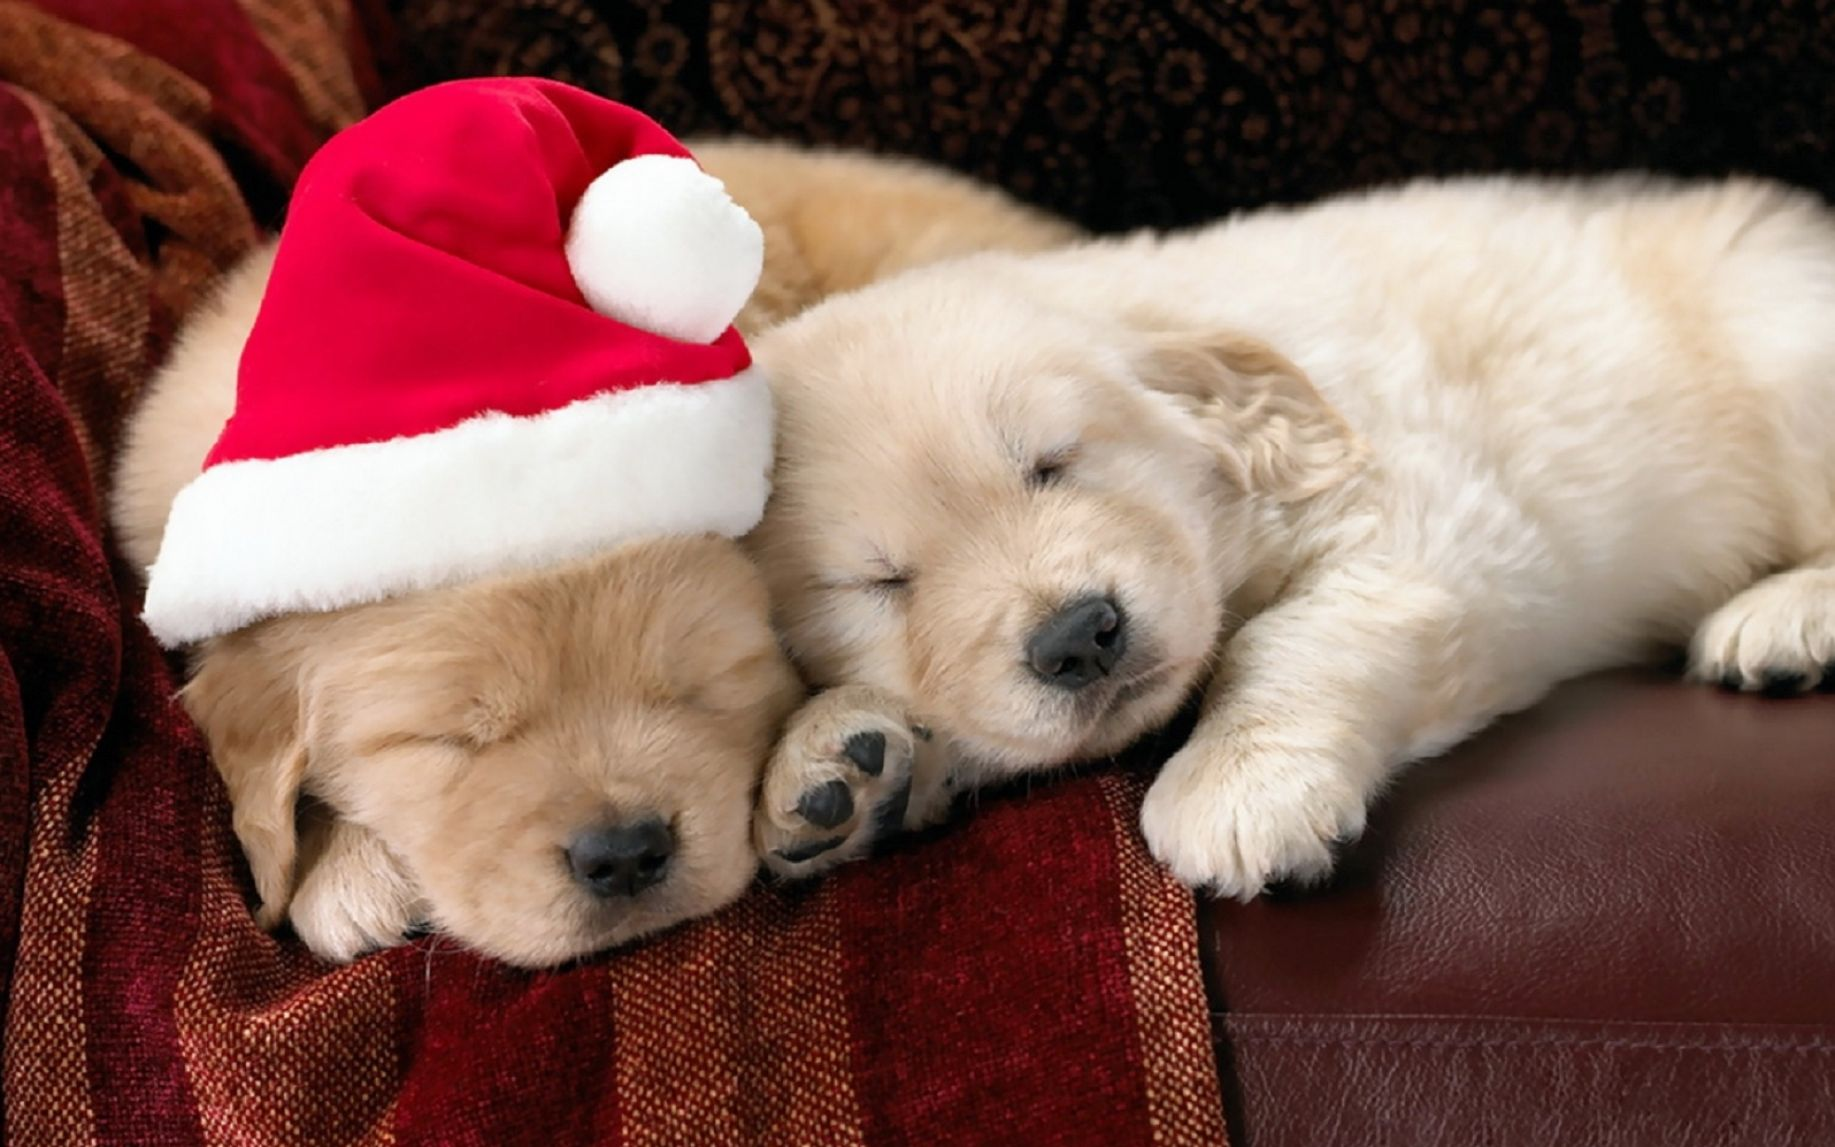 Cute Animal Christmas Wallpaper 10624 Hd Wallpapers in Celebrations 1835x1147